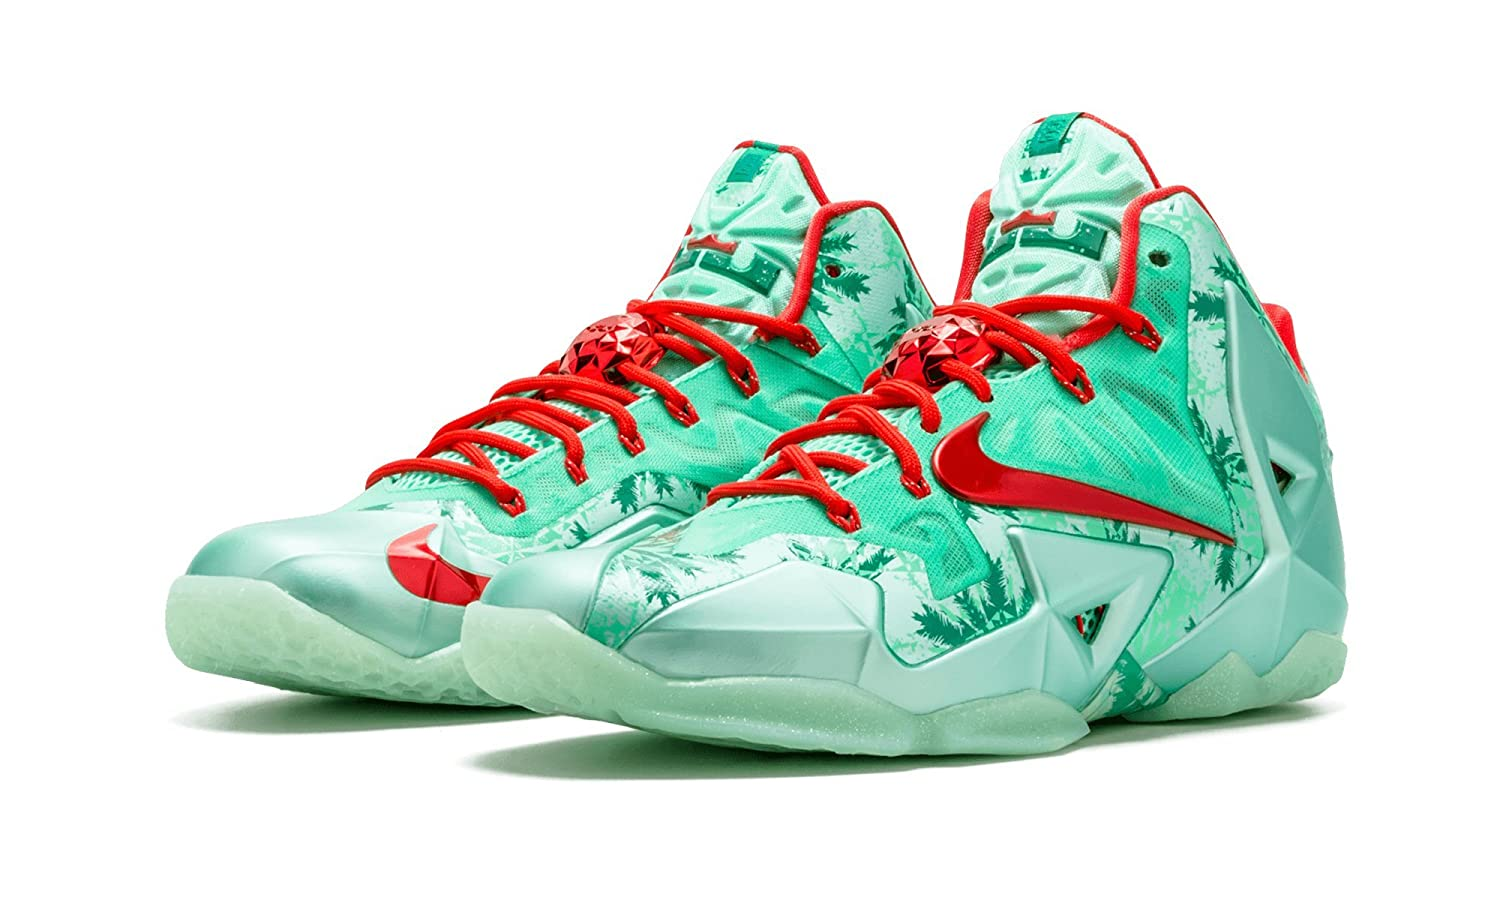 6685f83b821da5 Nike Lebron 11 Christmas - 616175-301 - Size 9 -  Amazon.co.uk  Shoes   Bags